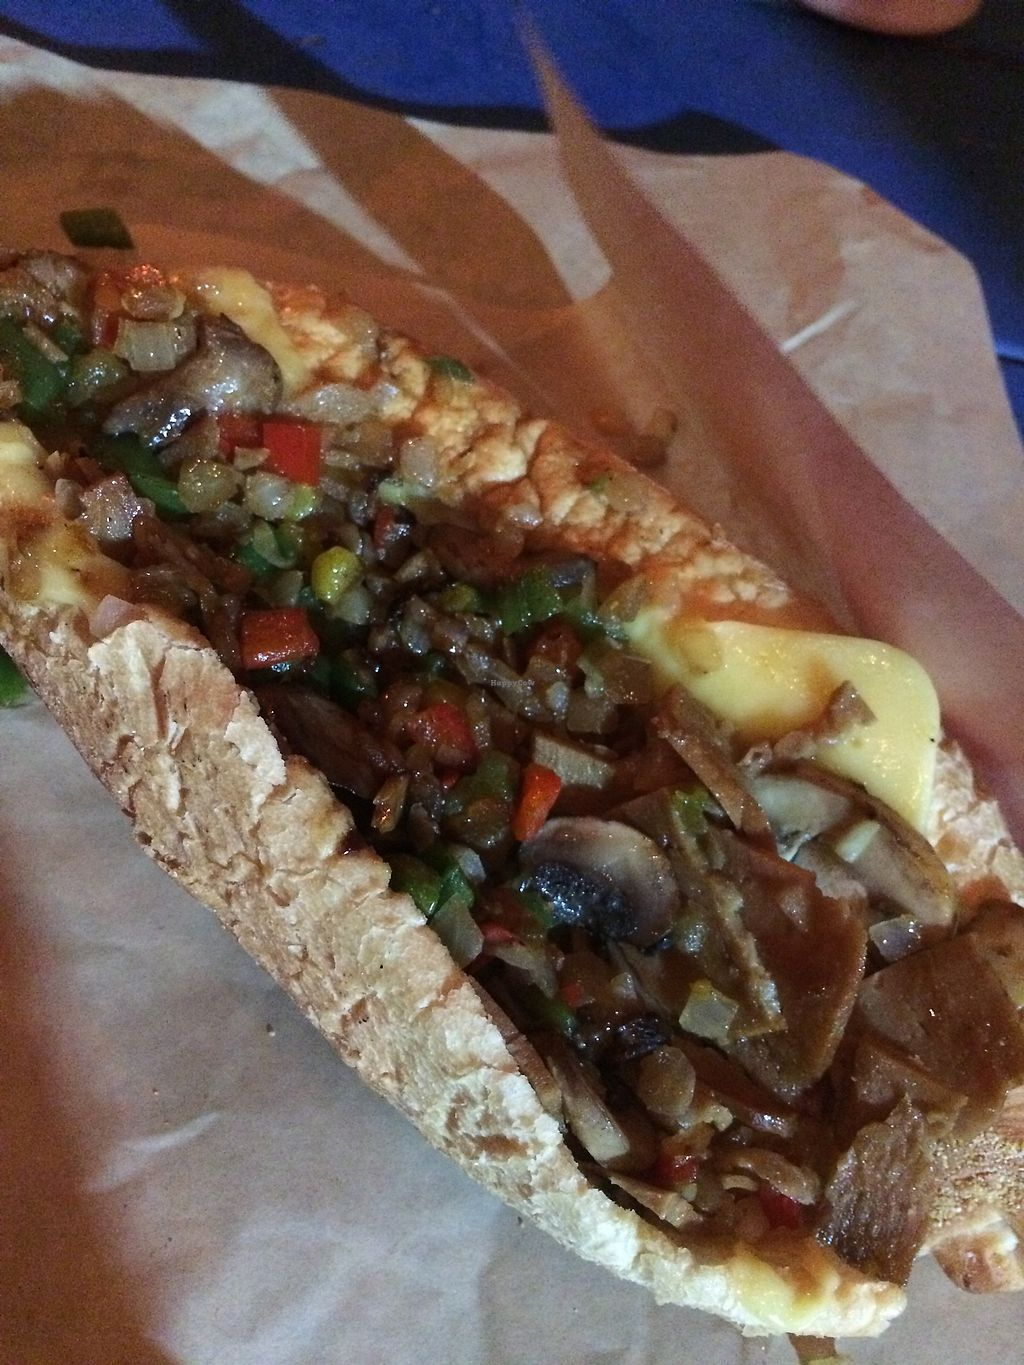 """Photo of 1776 Cheesesteak Co. - Food Truck  by <a href=""""/members/profile/AlishaM"""">AlishaM</a> <br/>Vegan cheesesteak <br/> April 12, 2018  - <a href='/contact/abuse/image/112106/384571'>Report</a>"""